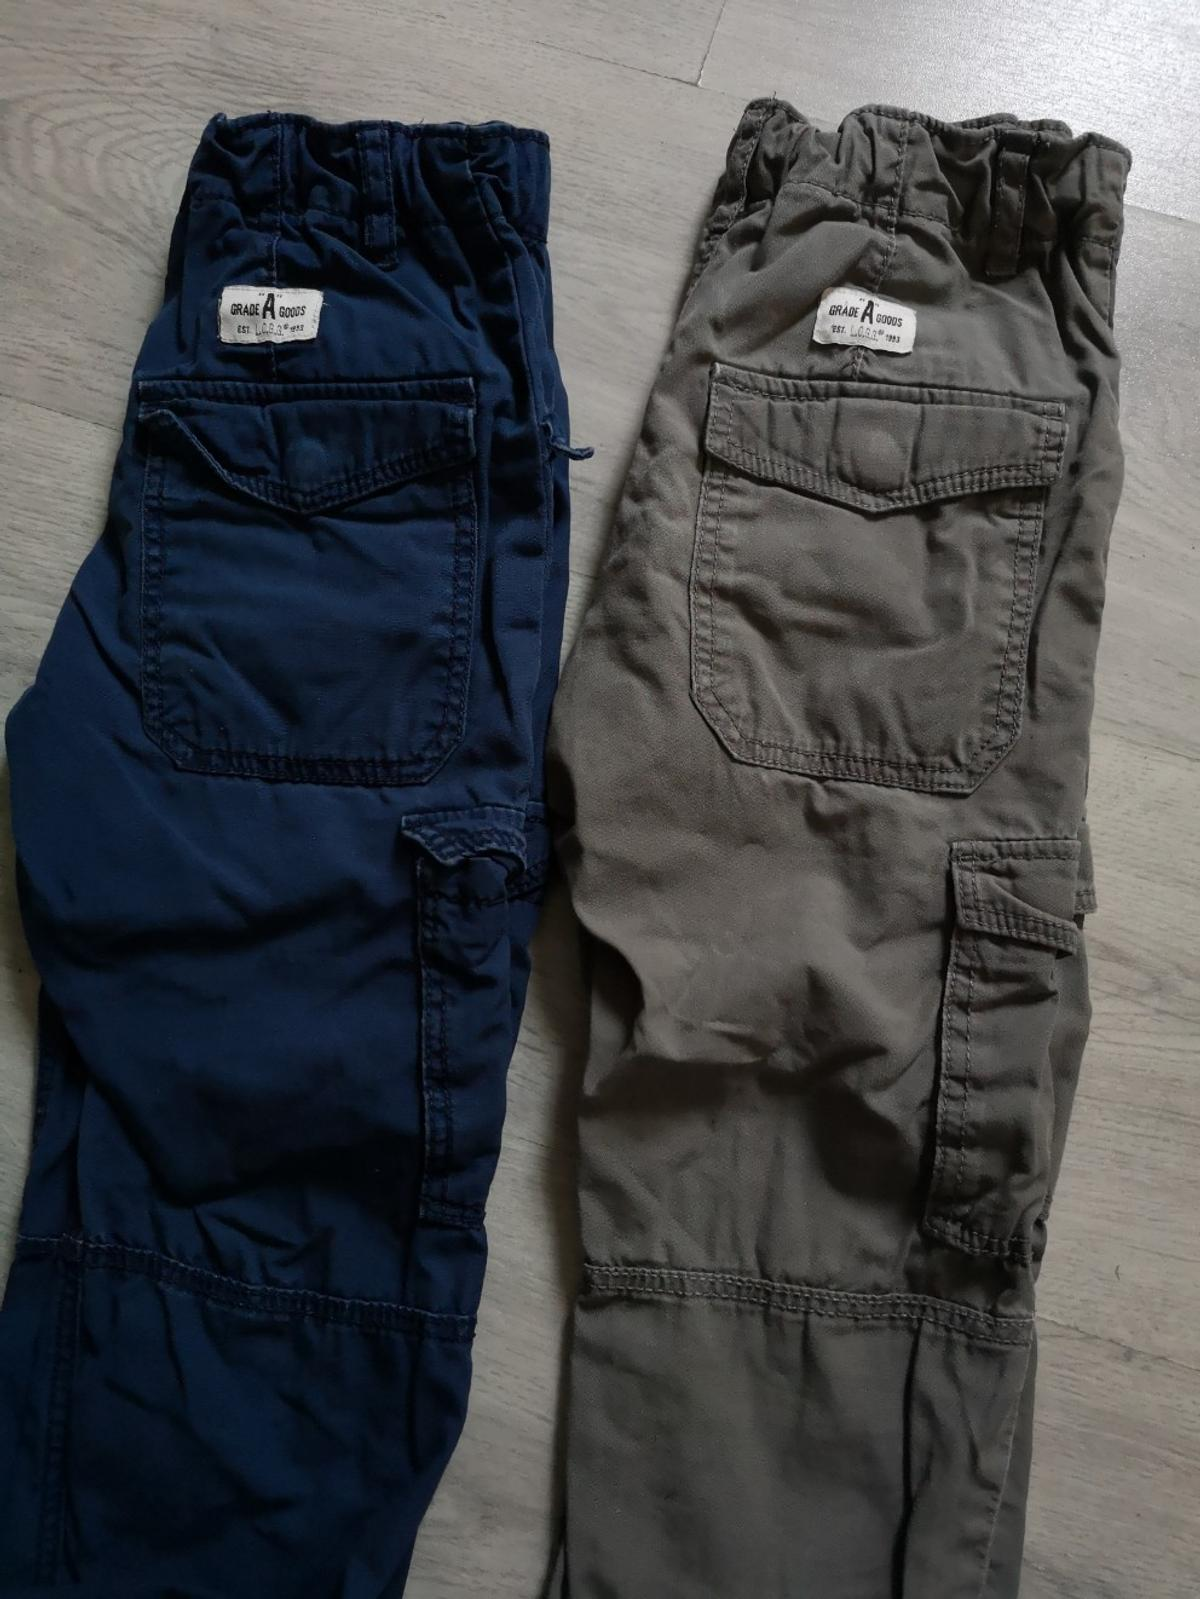 Kinder In amp;m For Jungen Gr Bonn 2 Hose 116 H 53117 00 €3 8yNn0mOvw